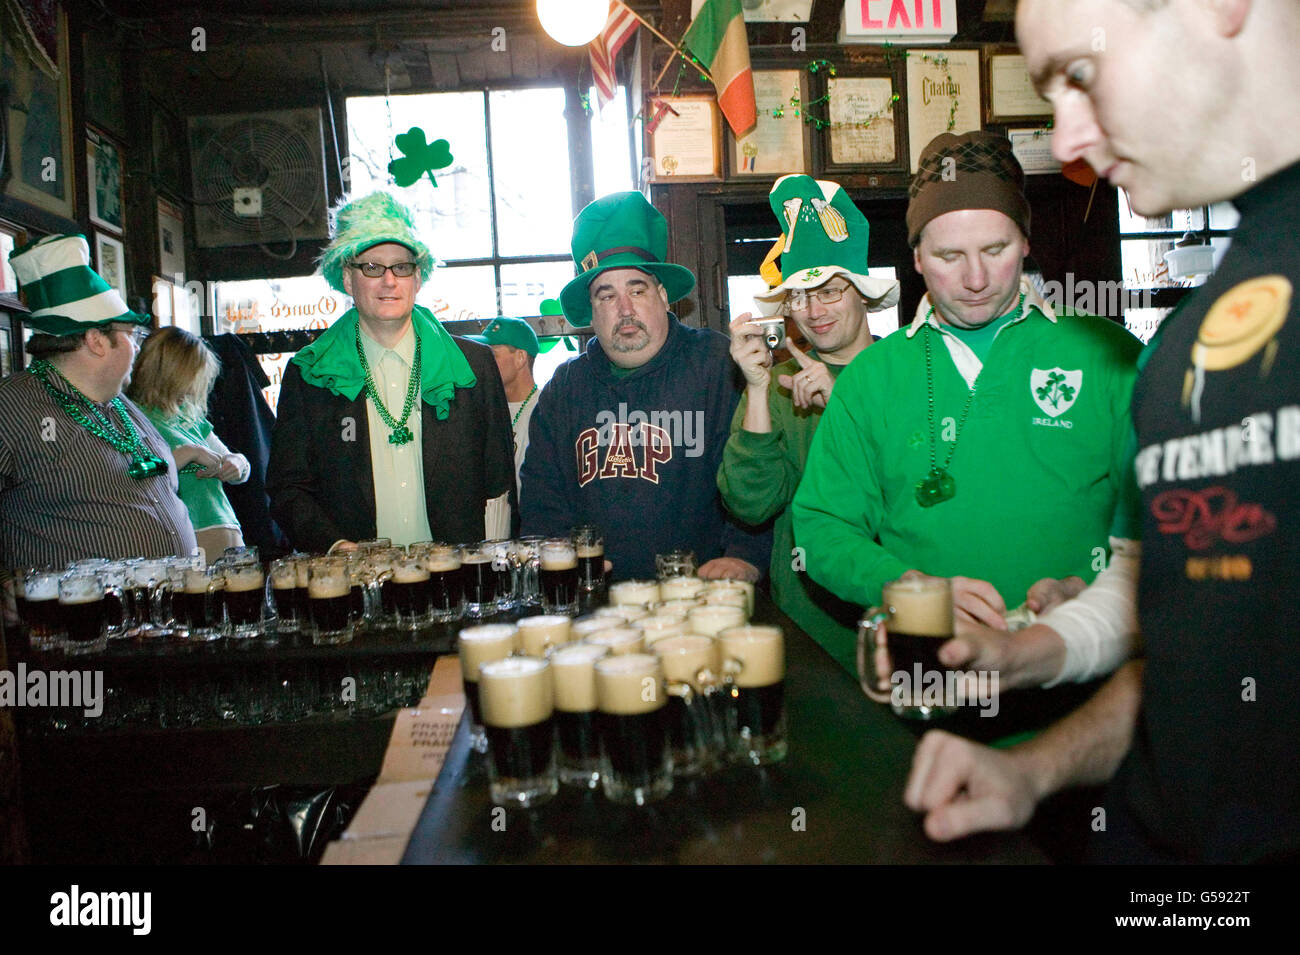 Barely awake customers celebrate St Patrick's day at McSorley's pub in New York City, 17 March 2006. - Stock Image